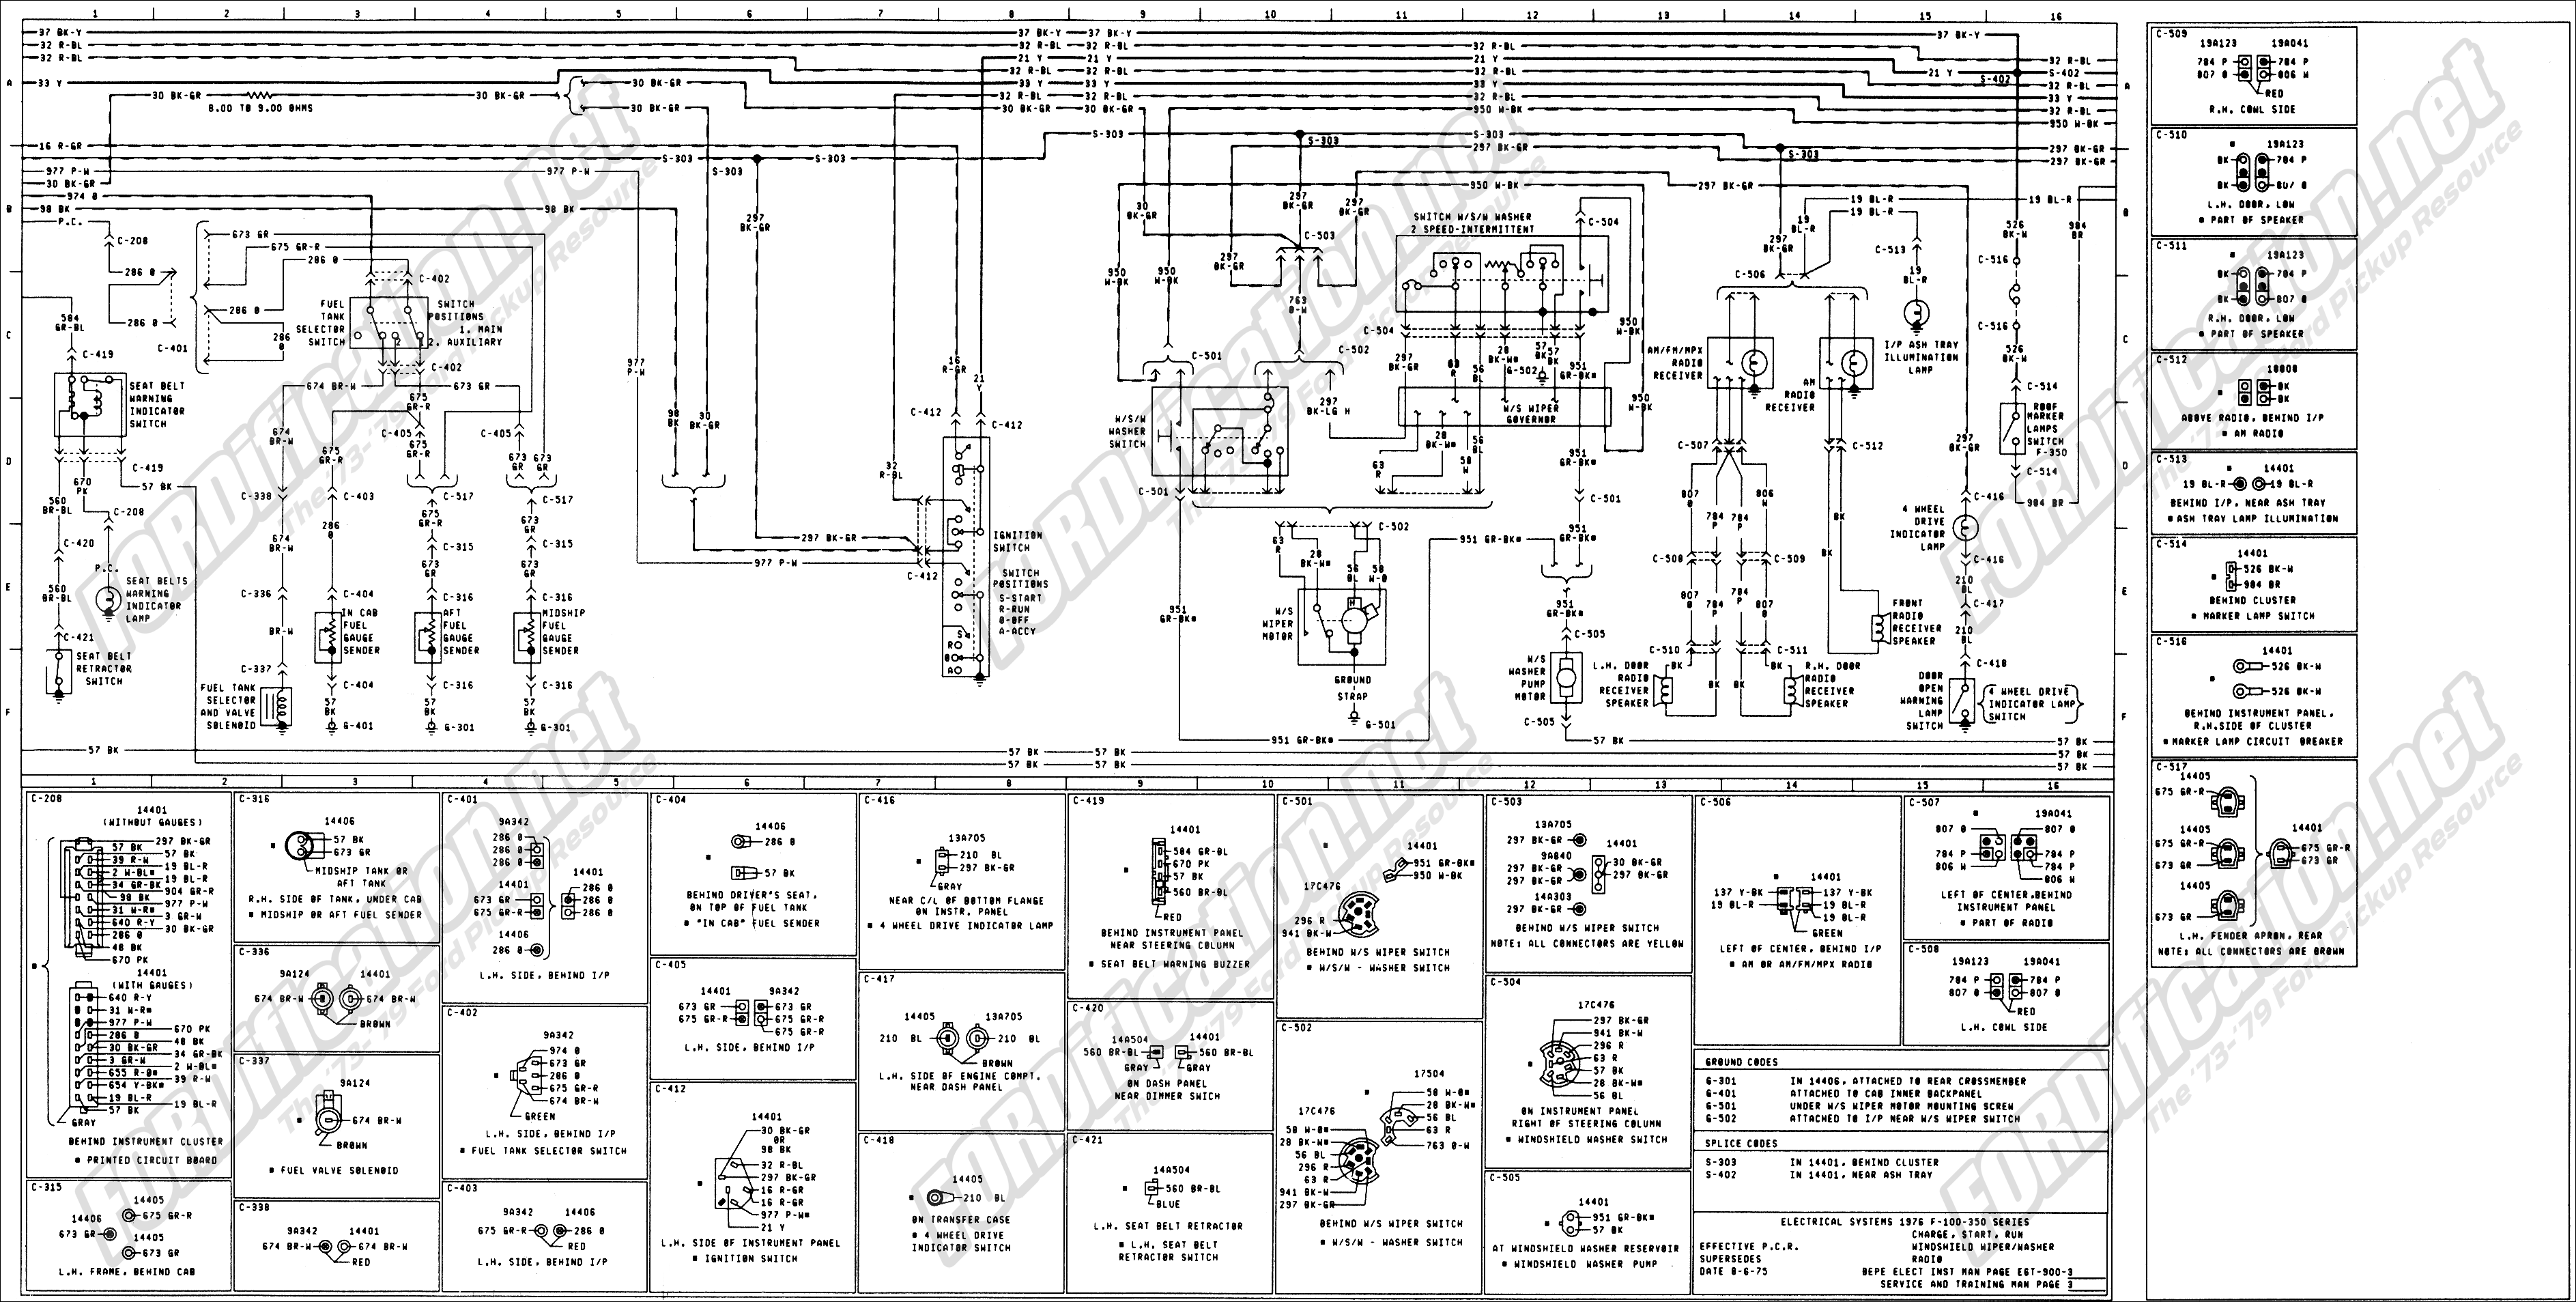 wiring_76master_3of9 1987 ford f 250 wiring diagram wiring diagram simonand 1979 ford f100 fuse box diagram at soozxer.org